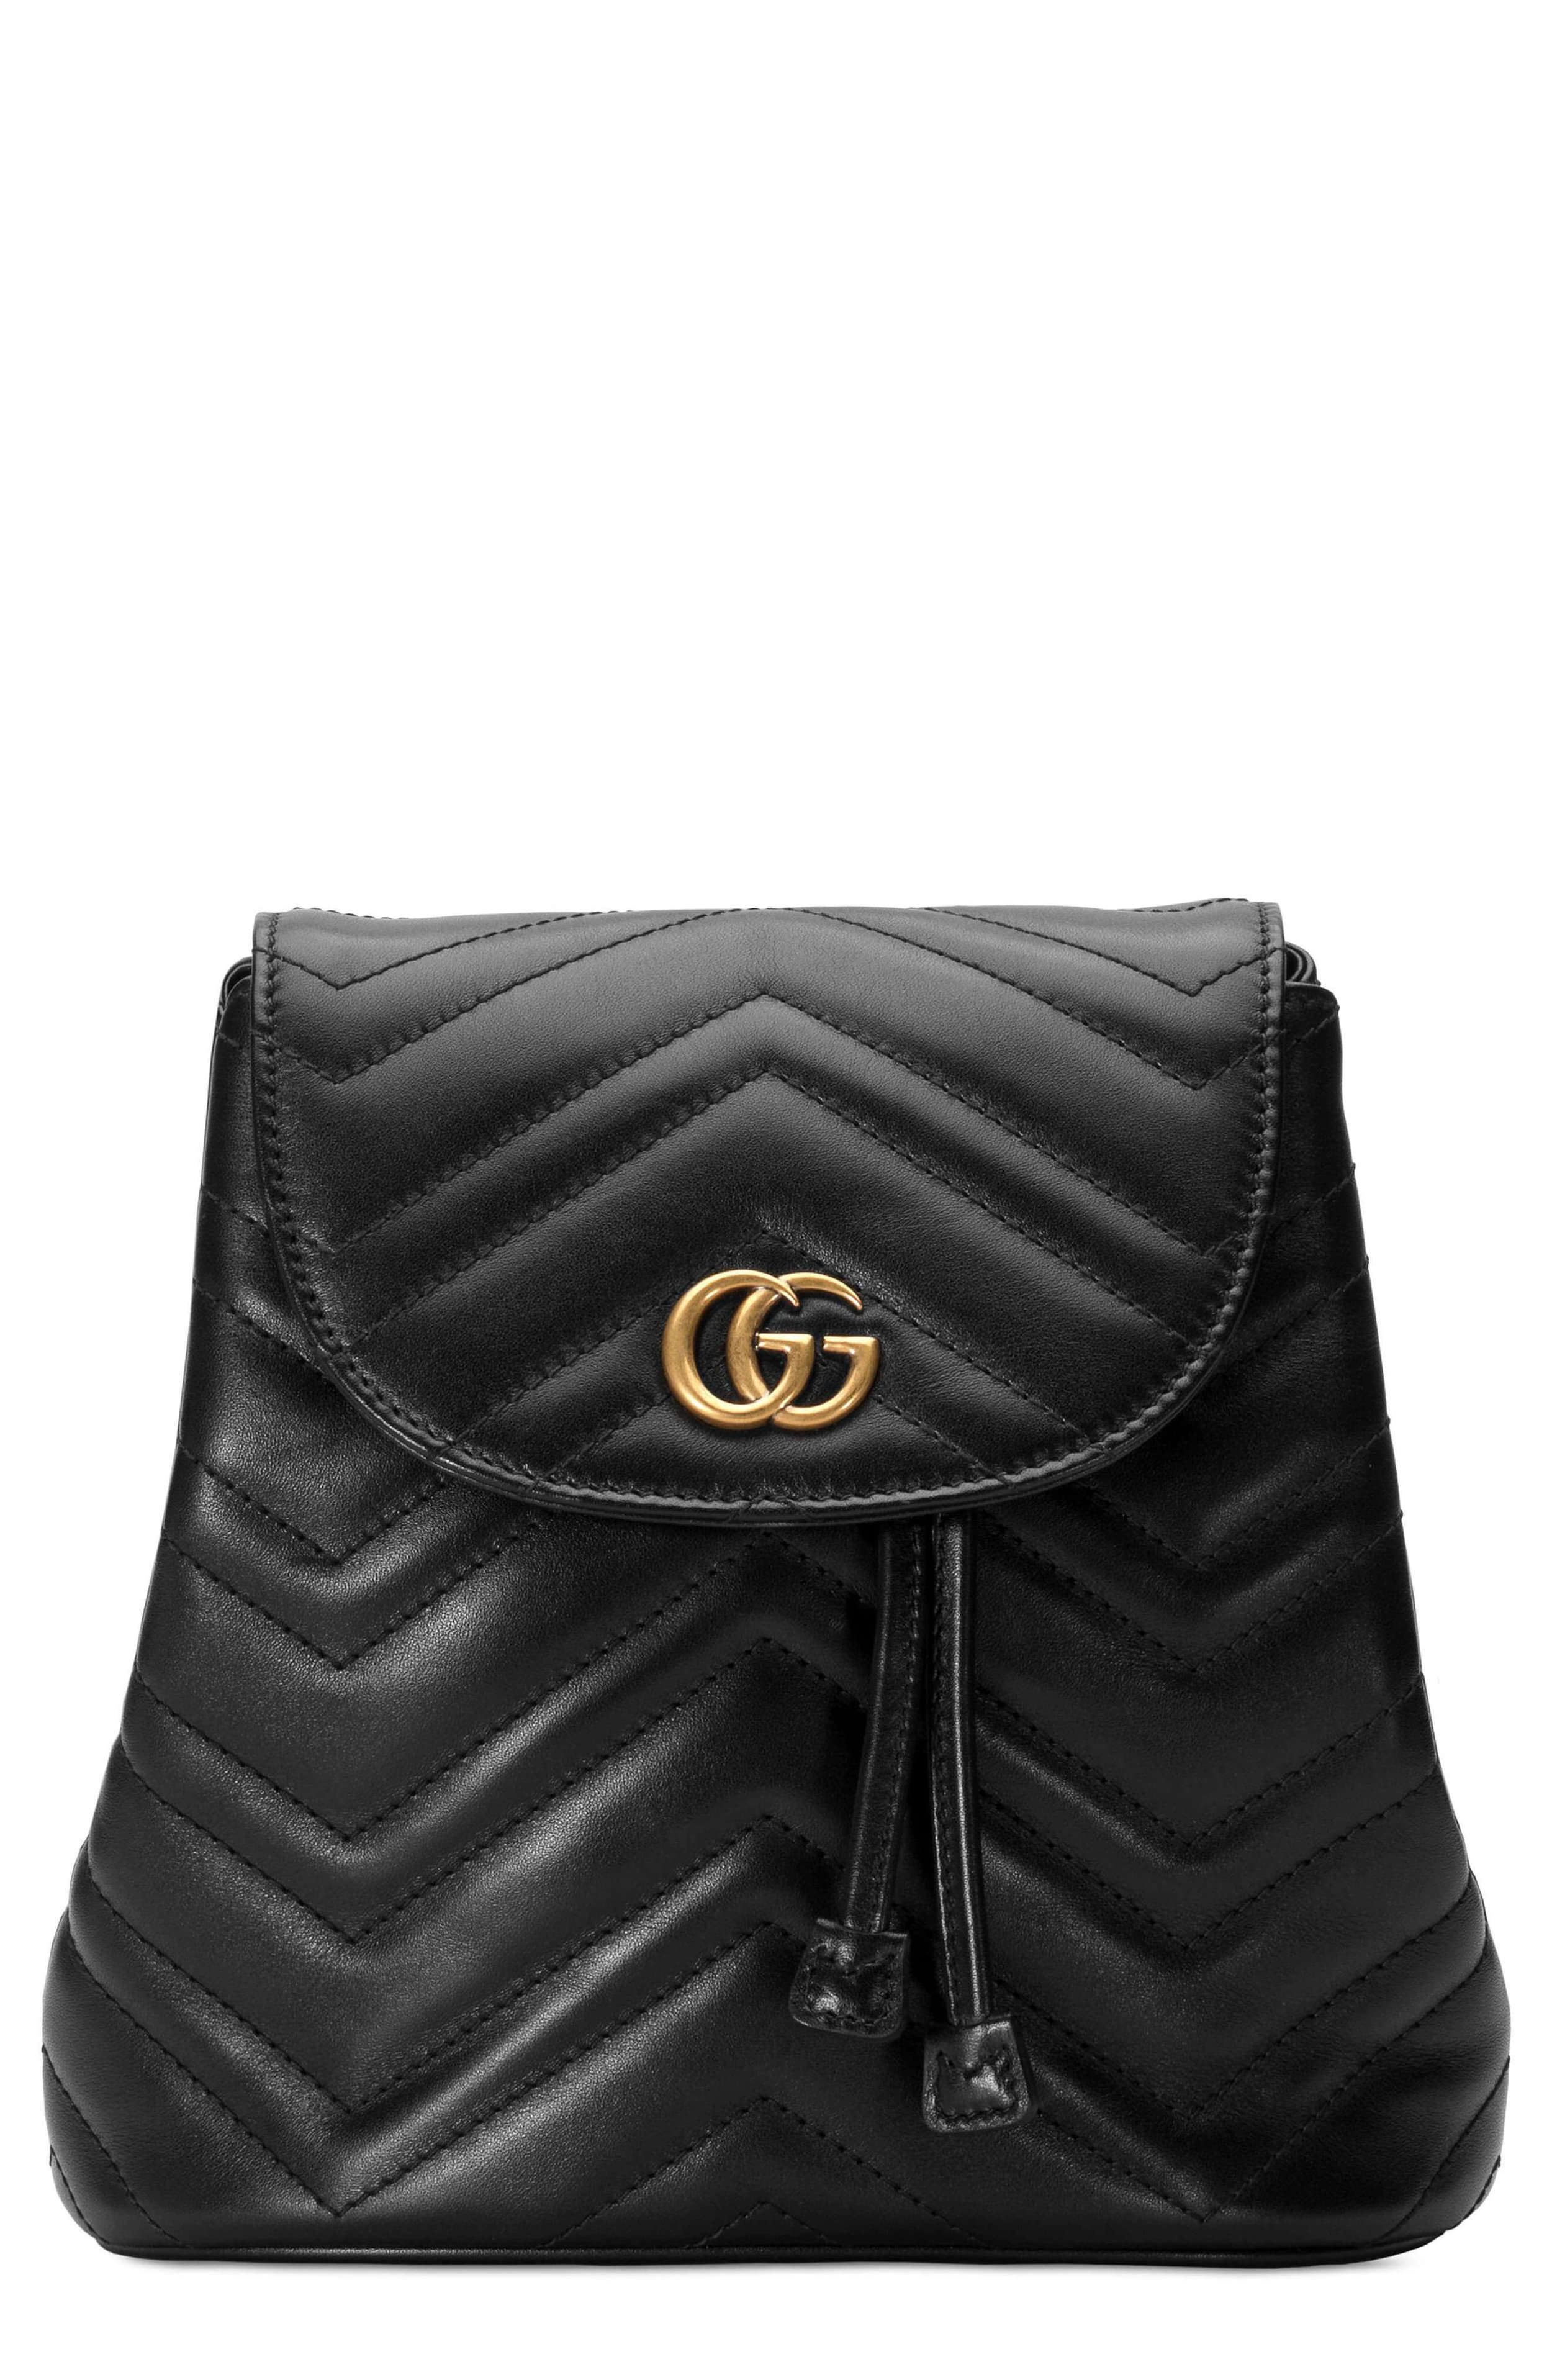 Gucci GG Marmont Leather Mini Backpack